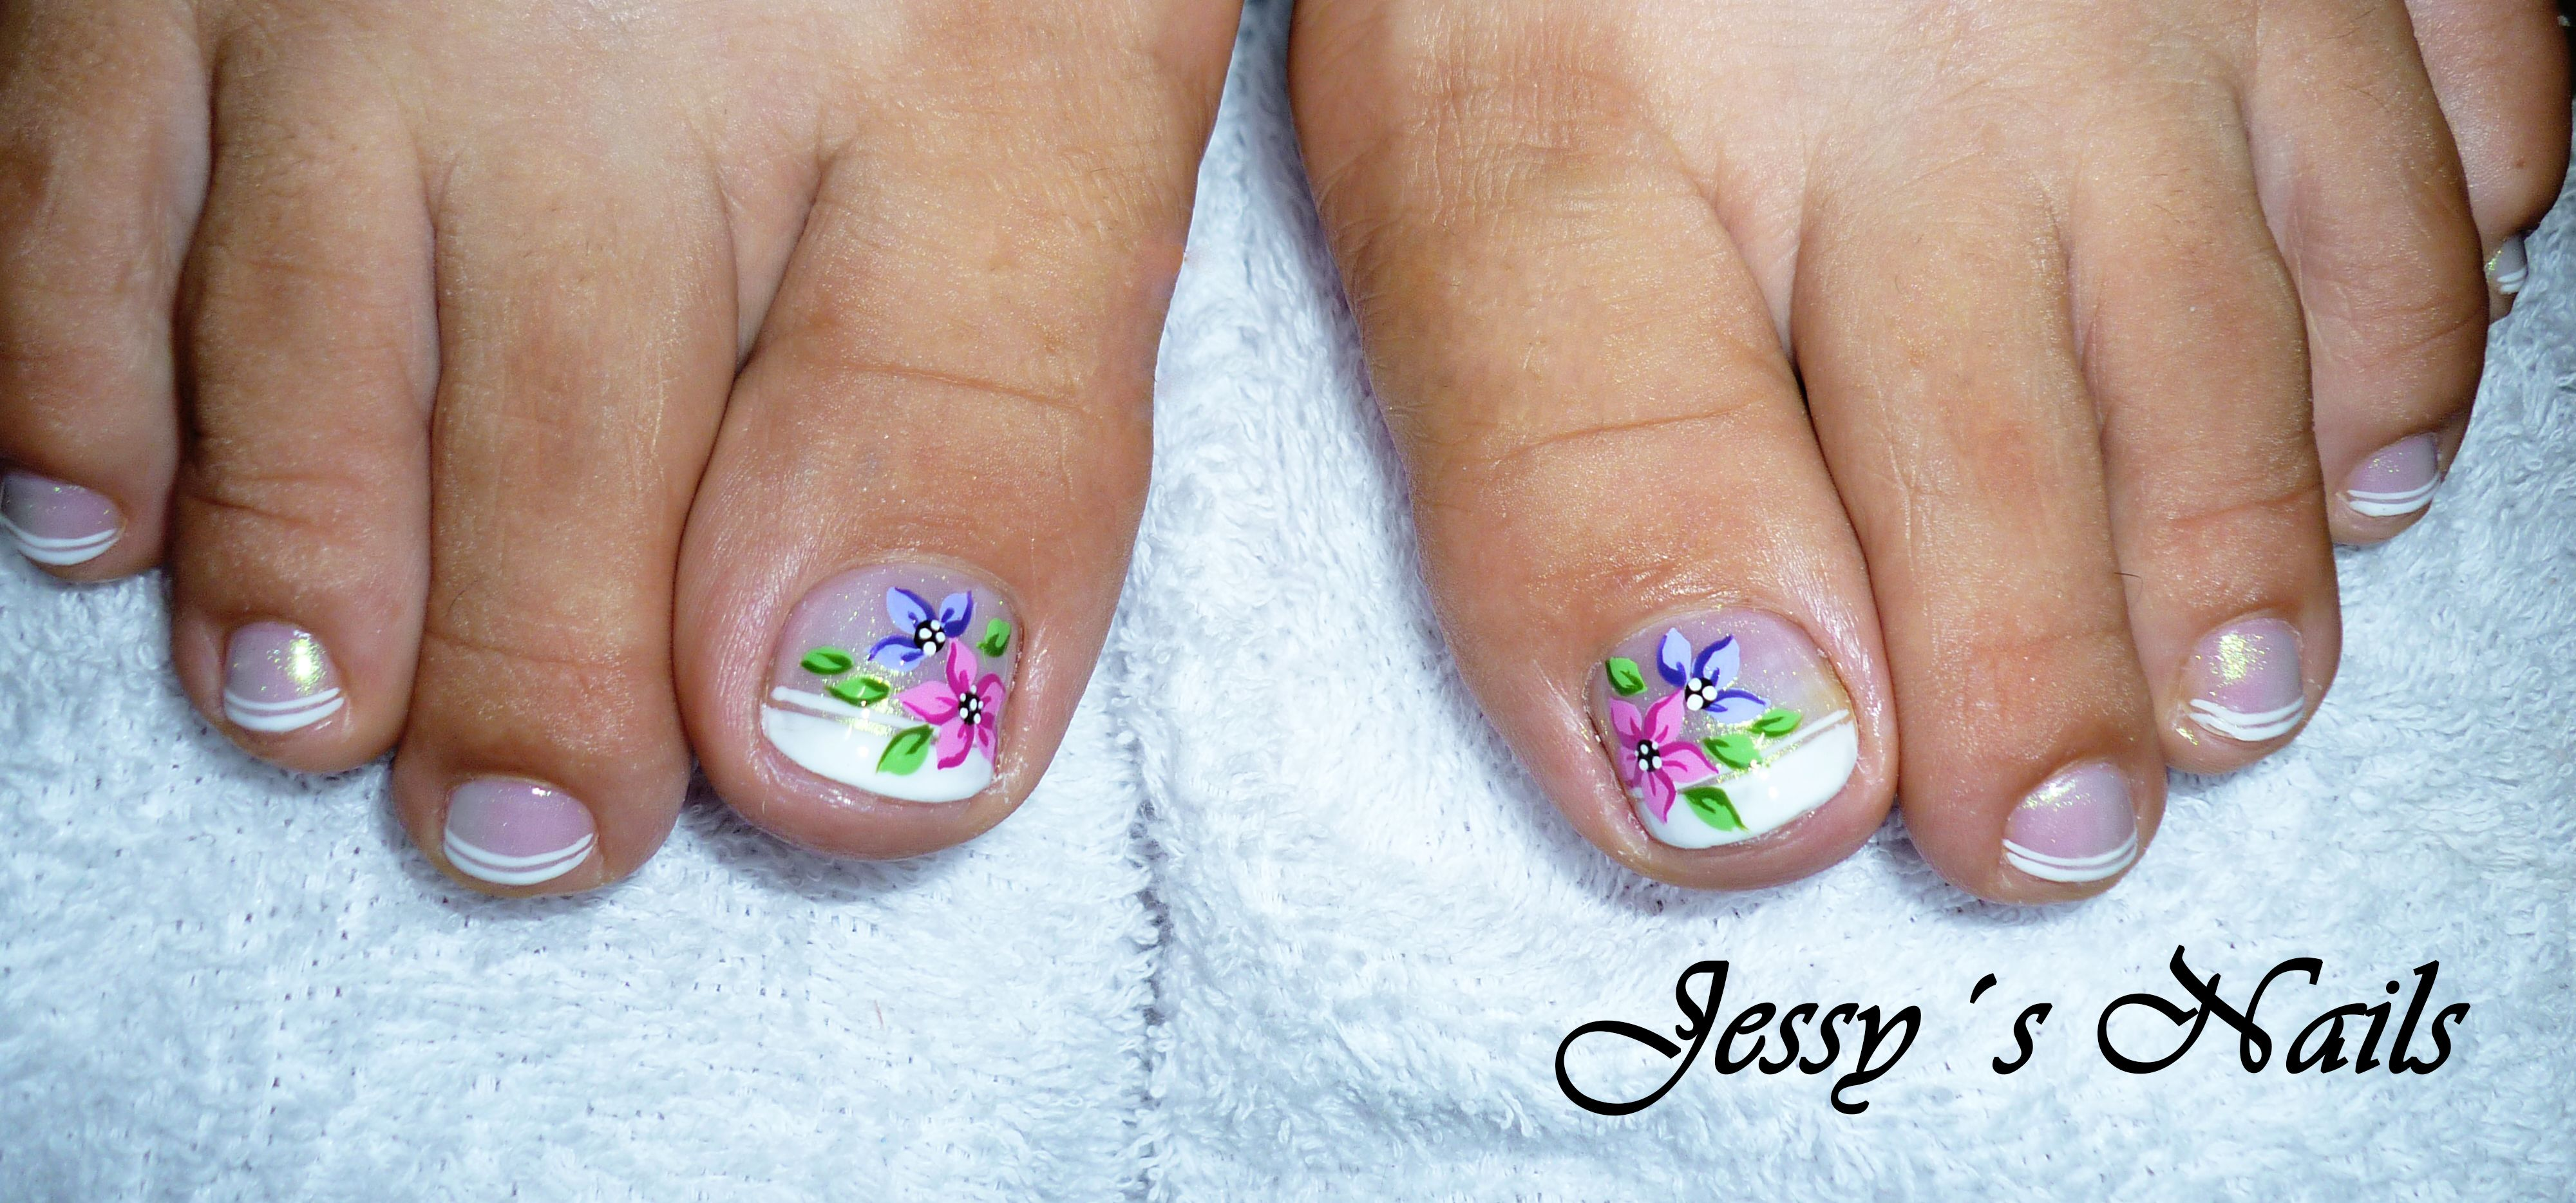 uñas decoradas pies sencillas | NAIL ART | Pinterest | Uñas ...